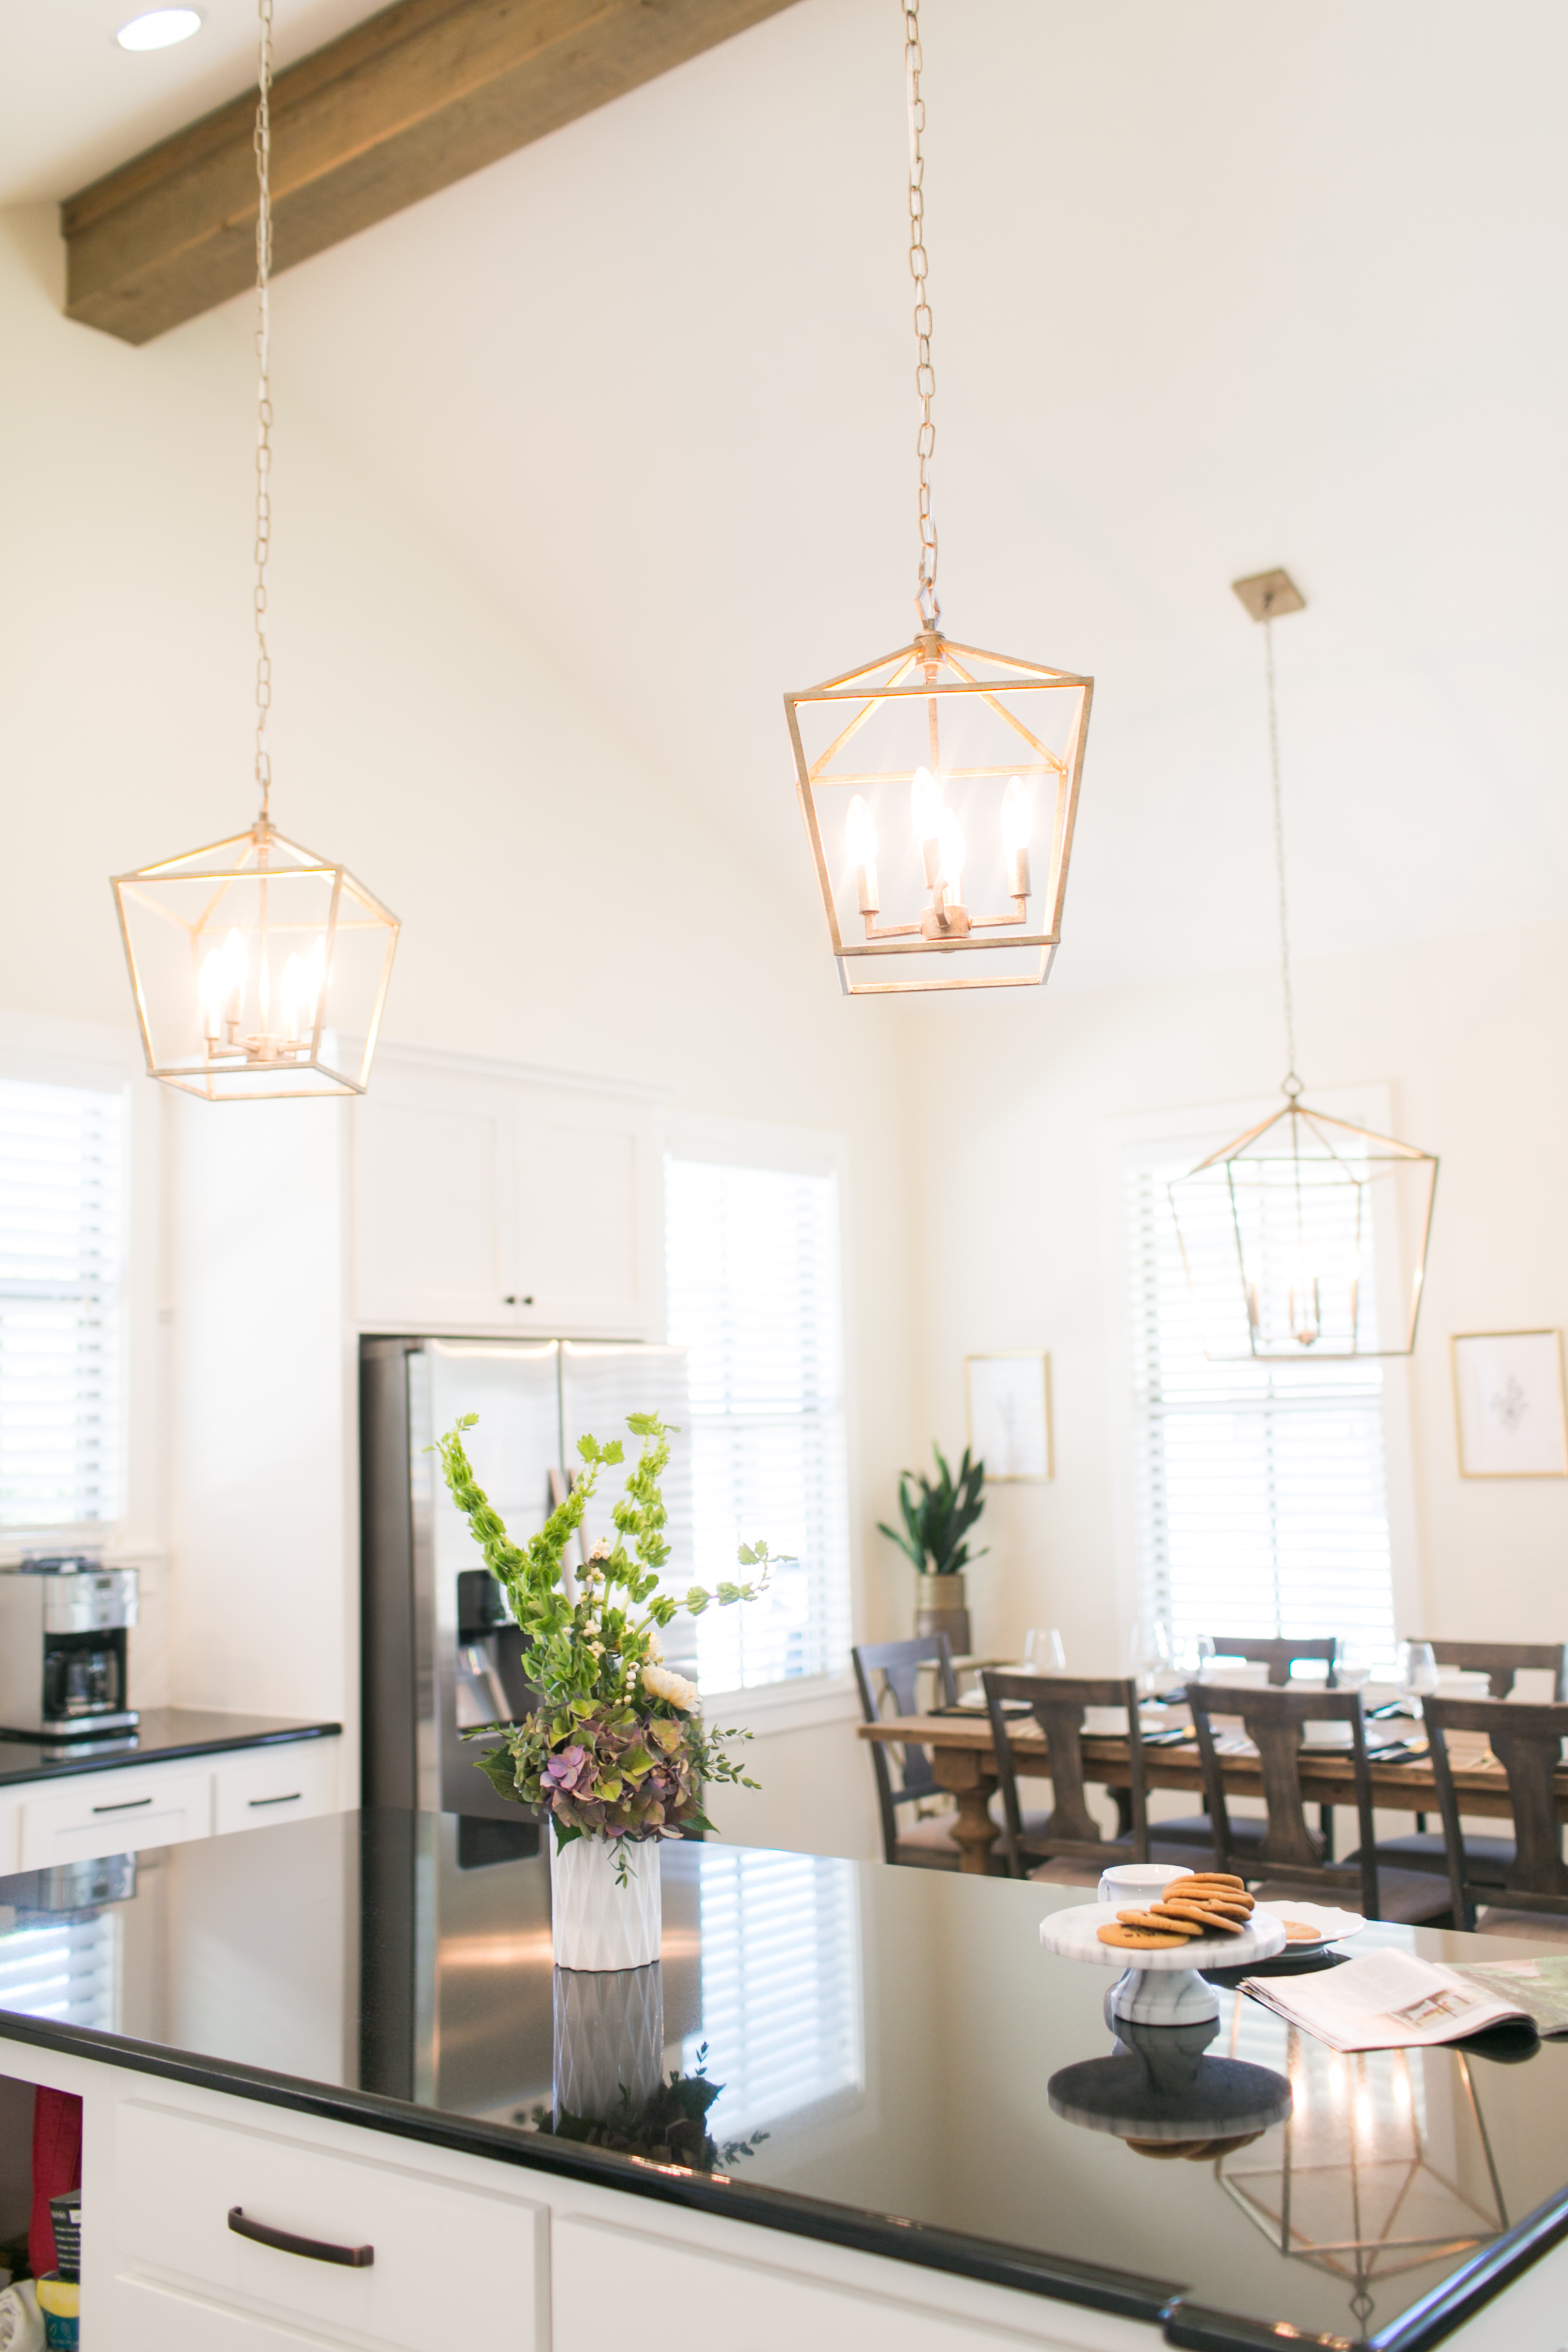 Avenues of Waco Project | Barn Light Homes